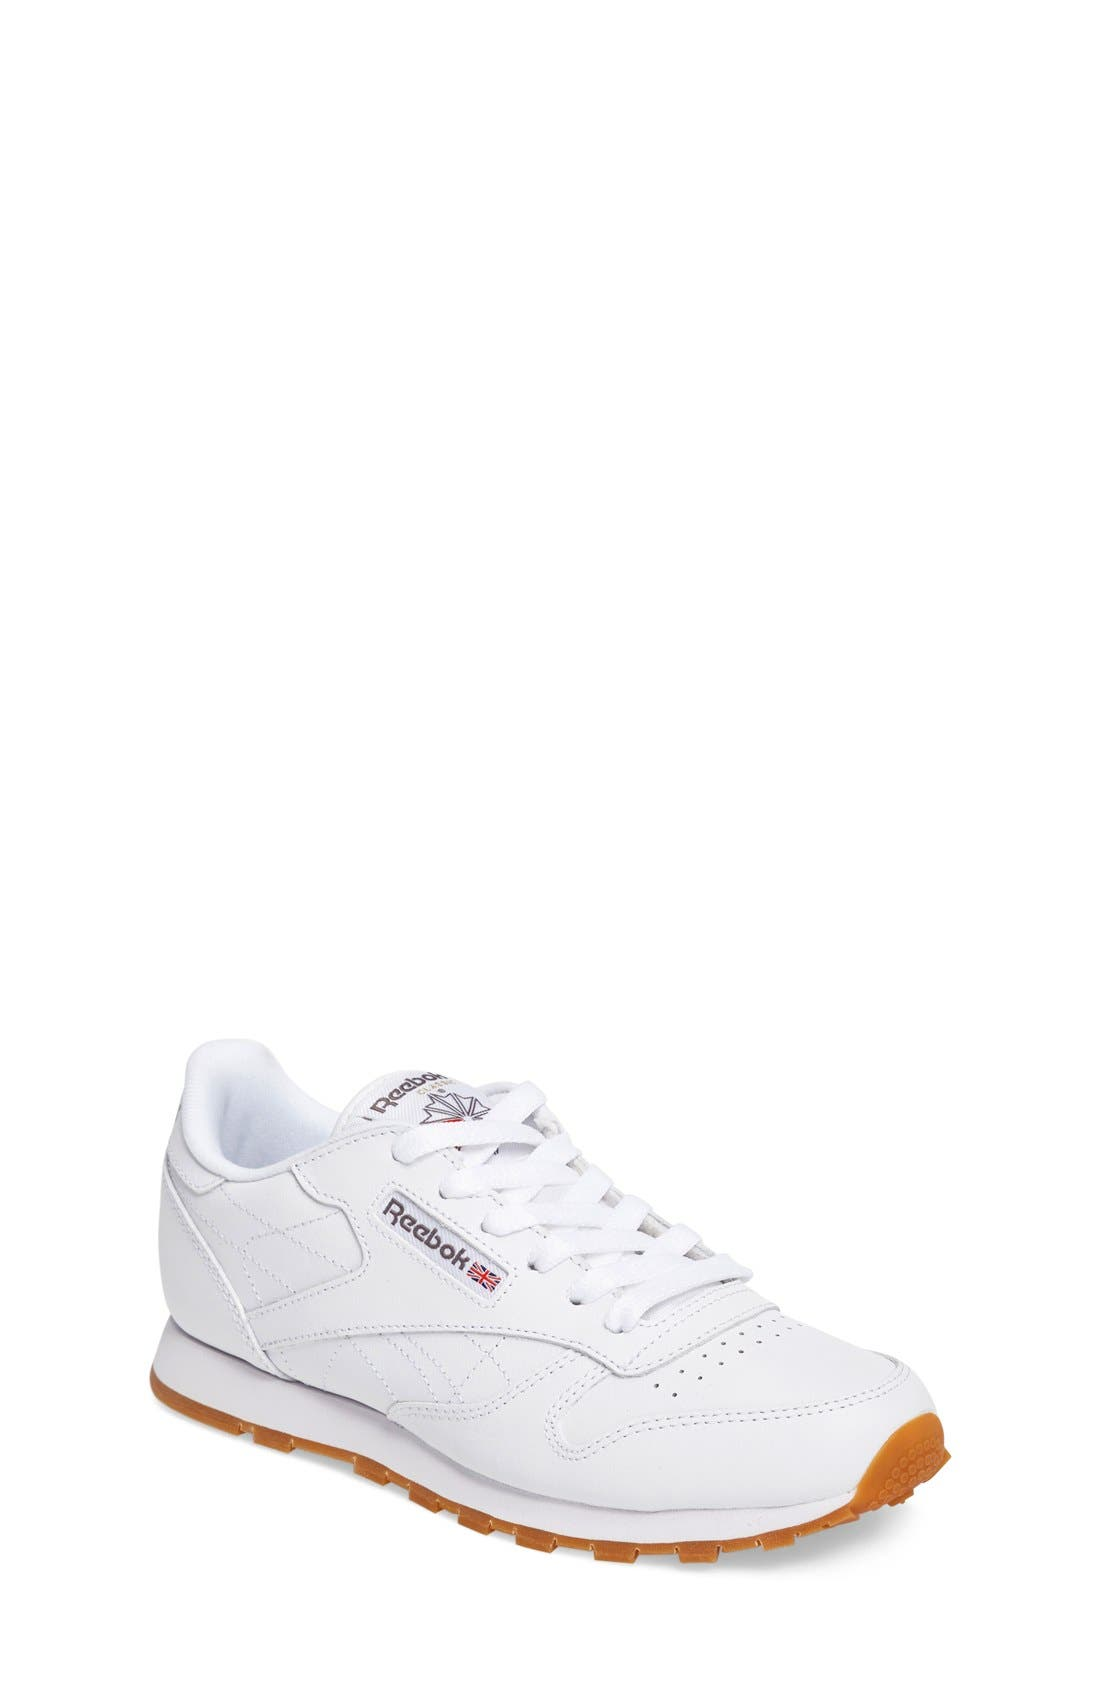 Reebok Classic Leather Sneaker (Big Kid)